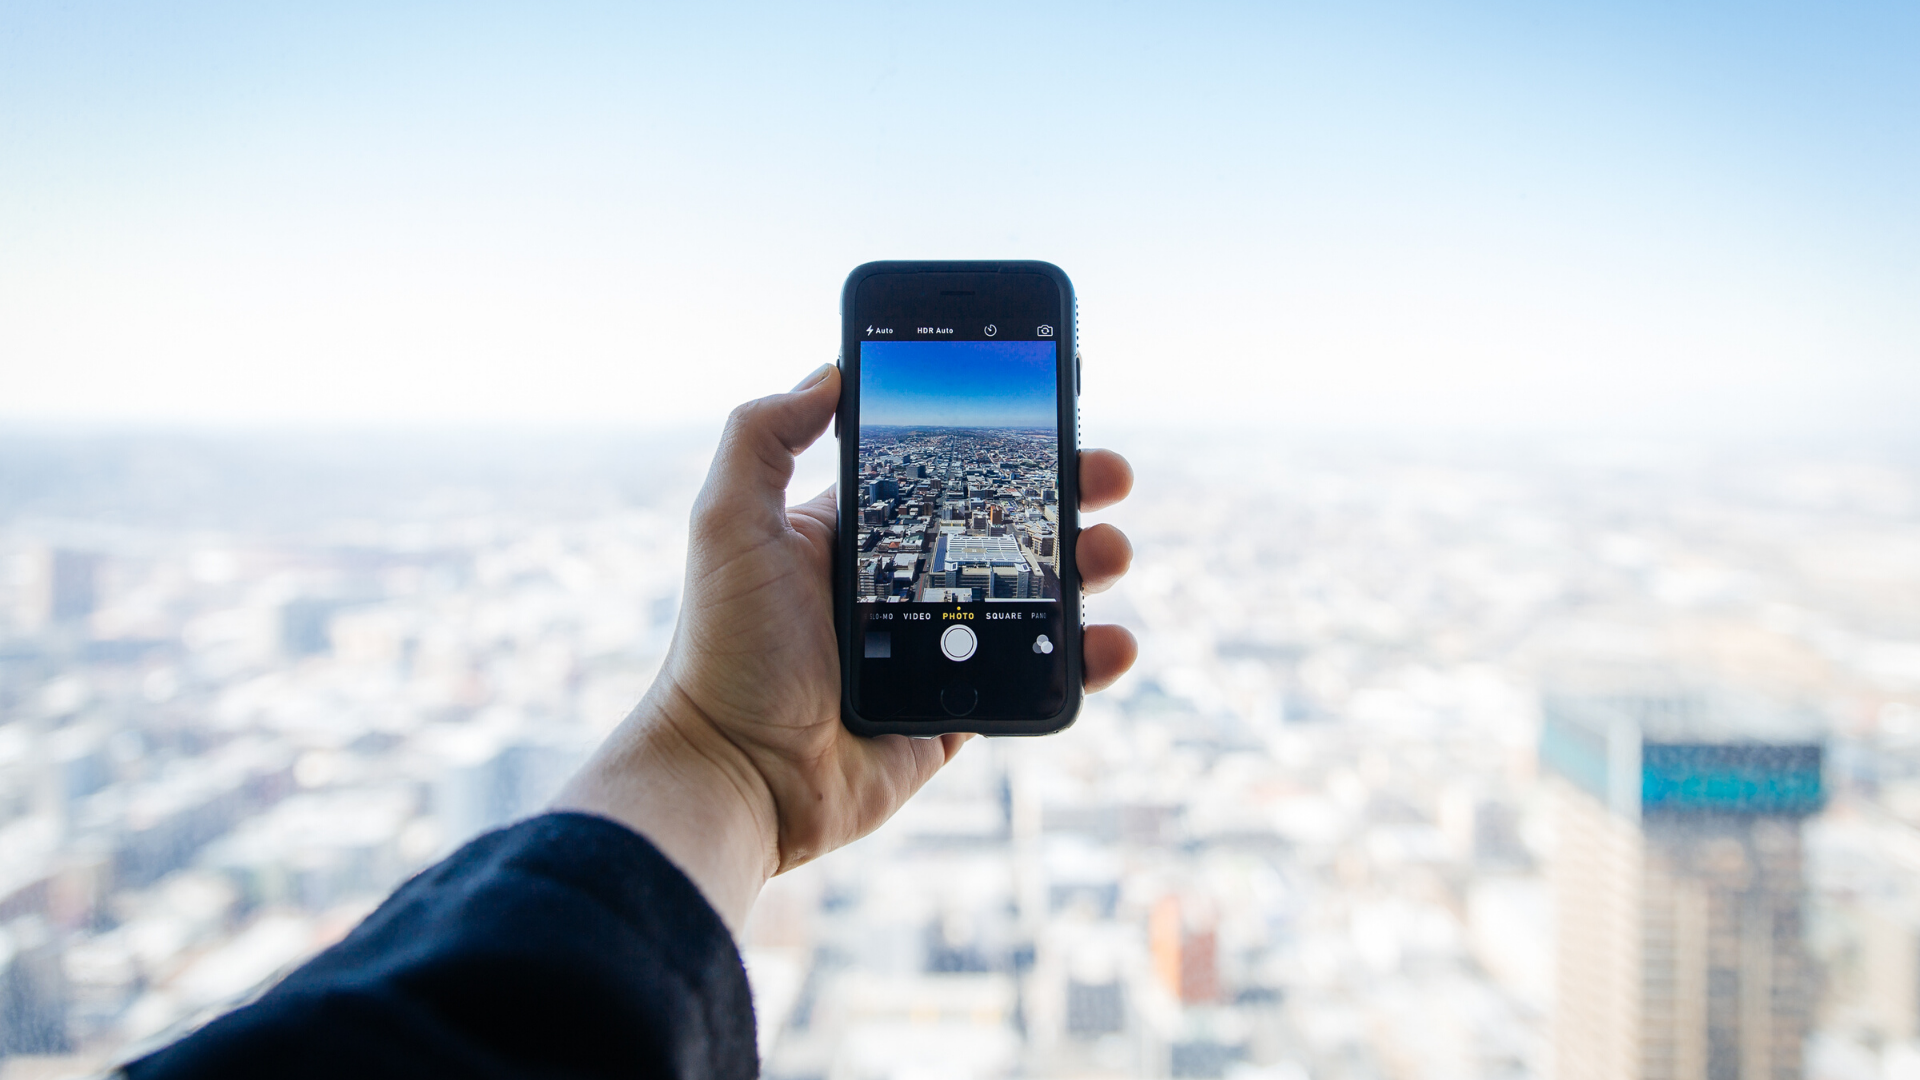 An iPhone camera overlooking a city